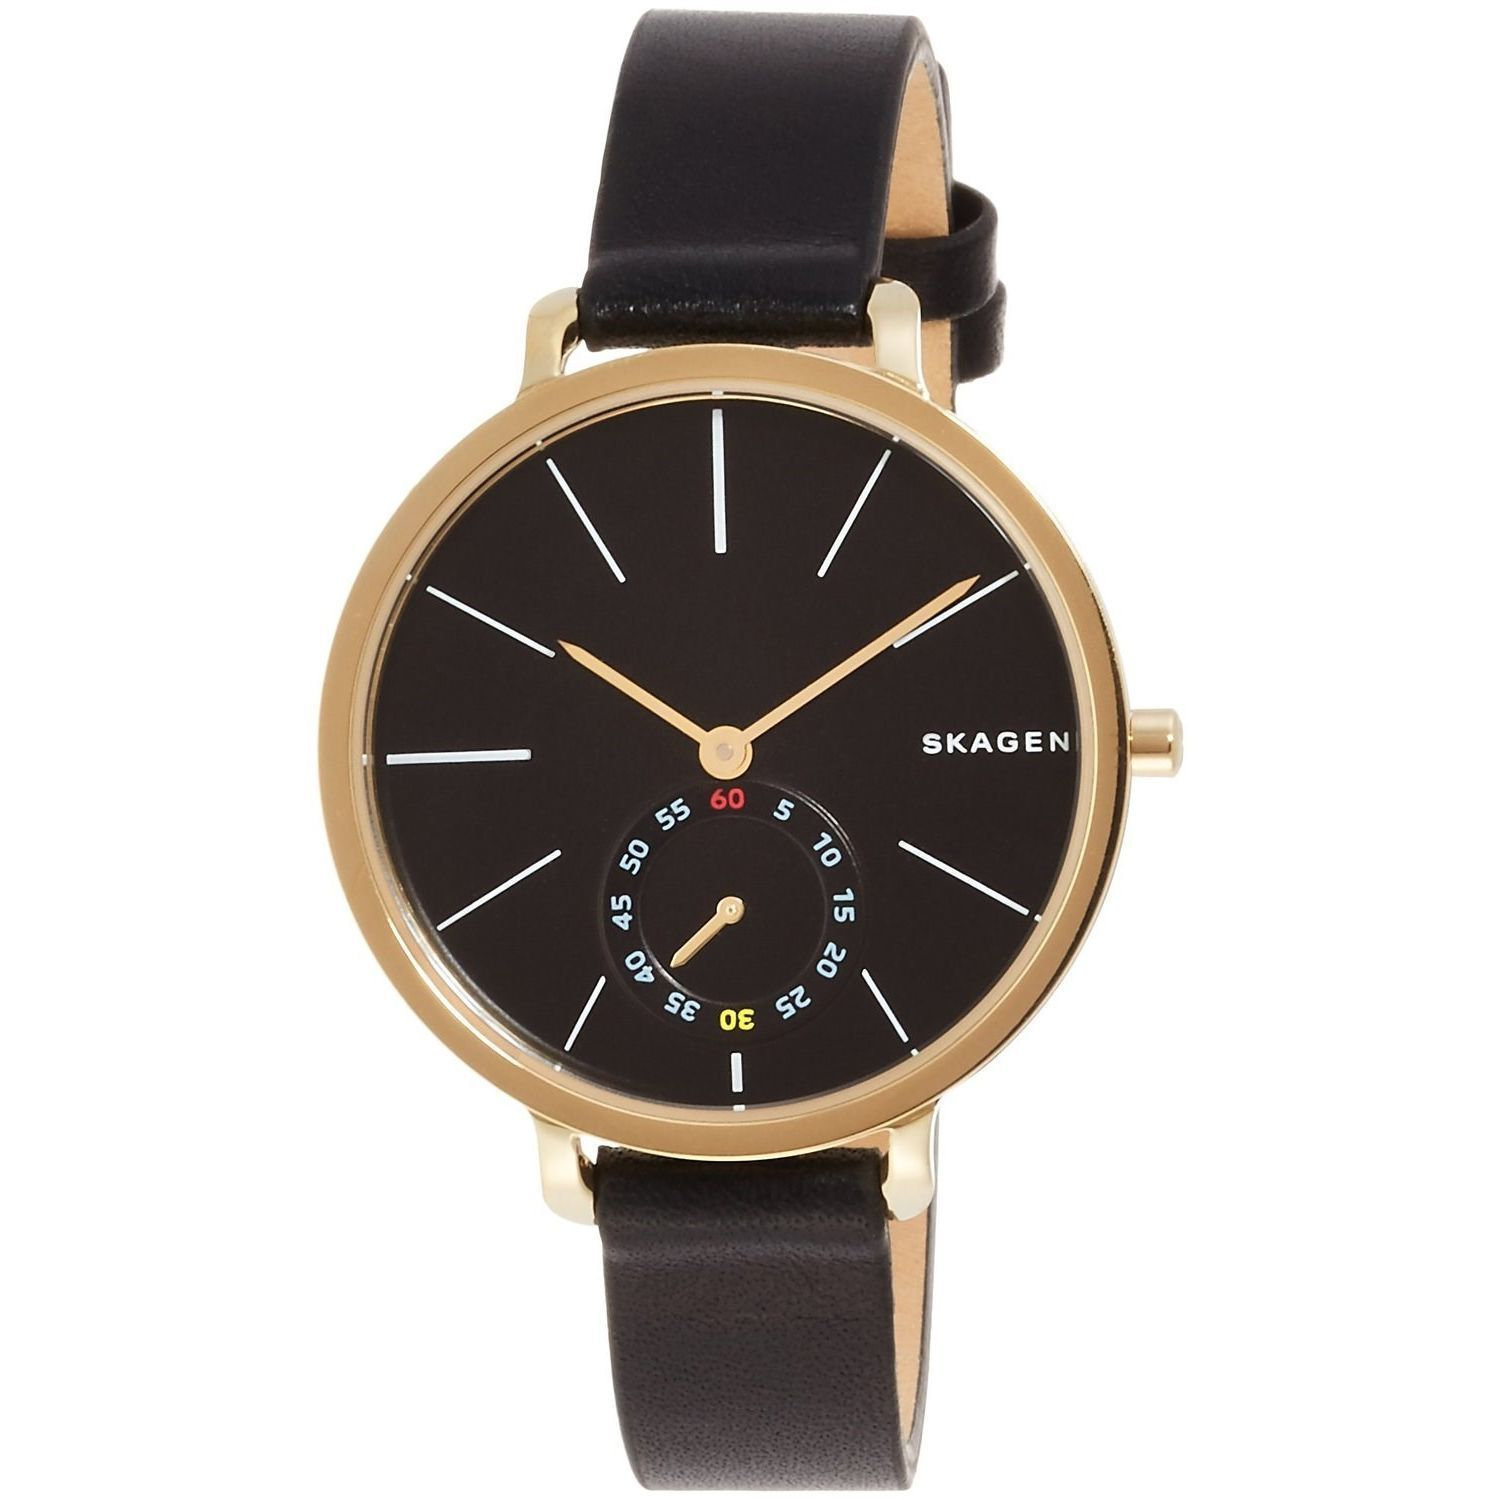 hagen s watches shipping product today free leather men skagen overstock jewelry mens brown watch